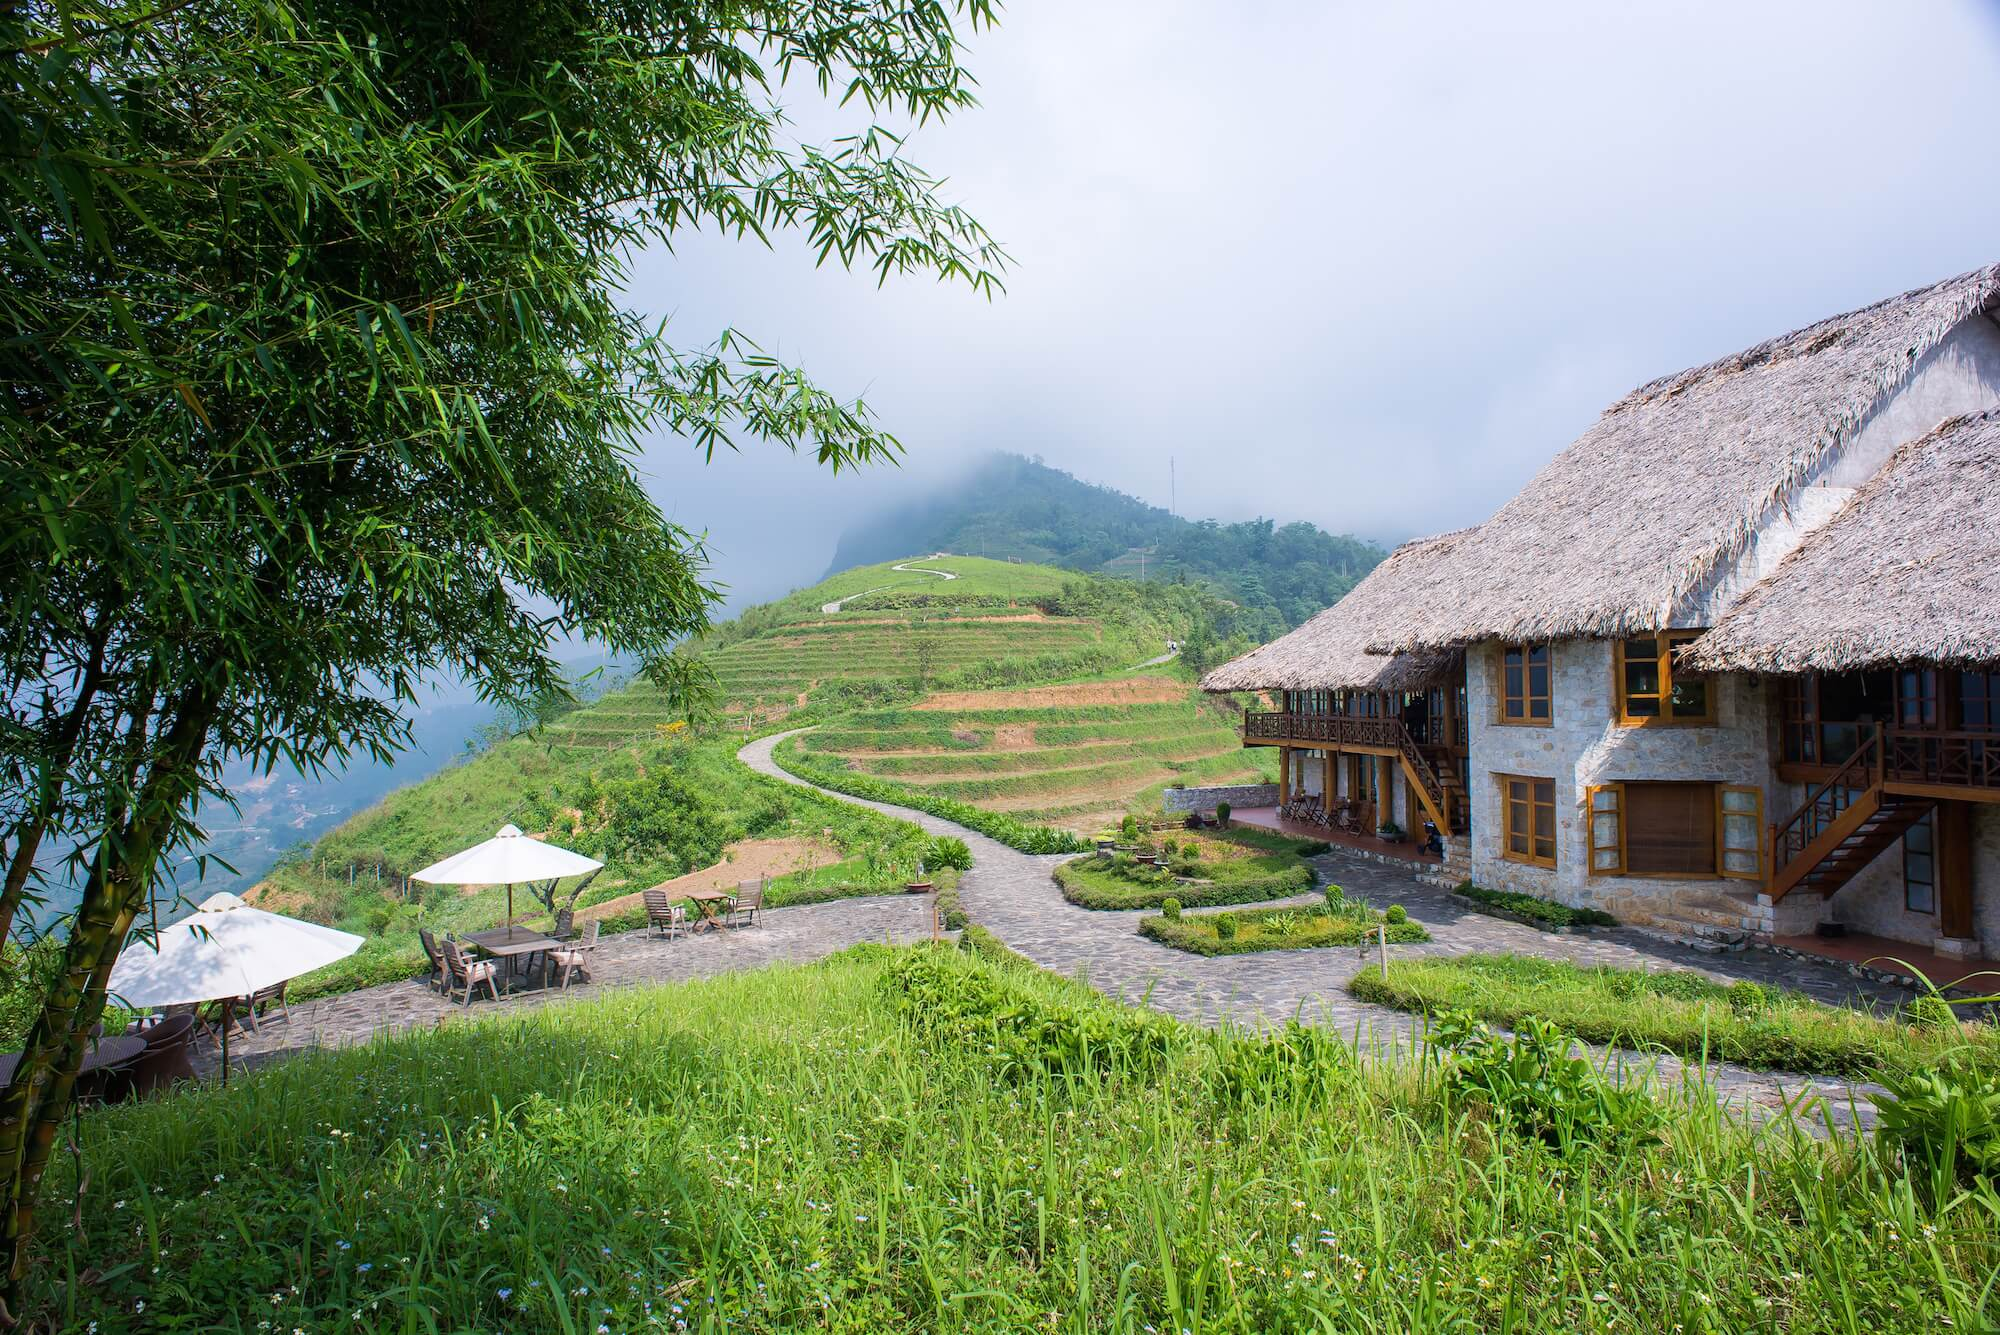 33 white granite bungalows of the Topas are roofed with palm leaves overlooking the lush mountain and rice fields.